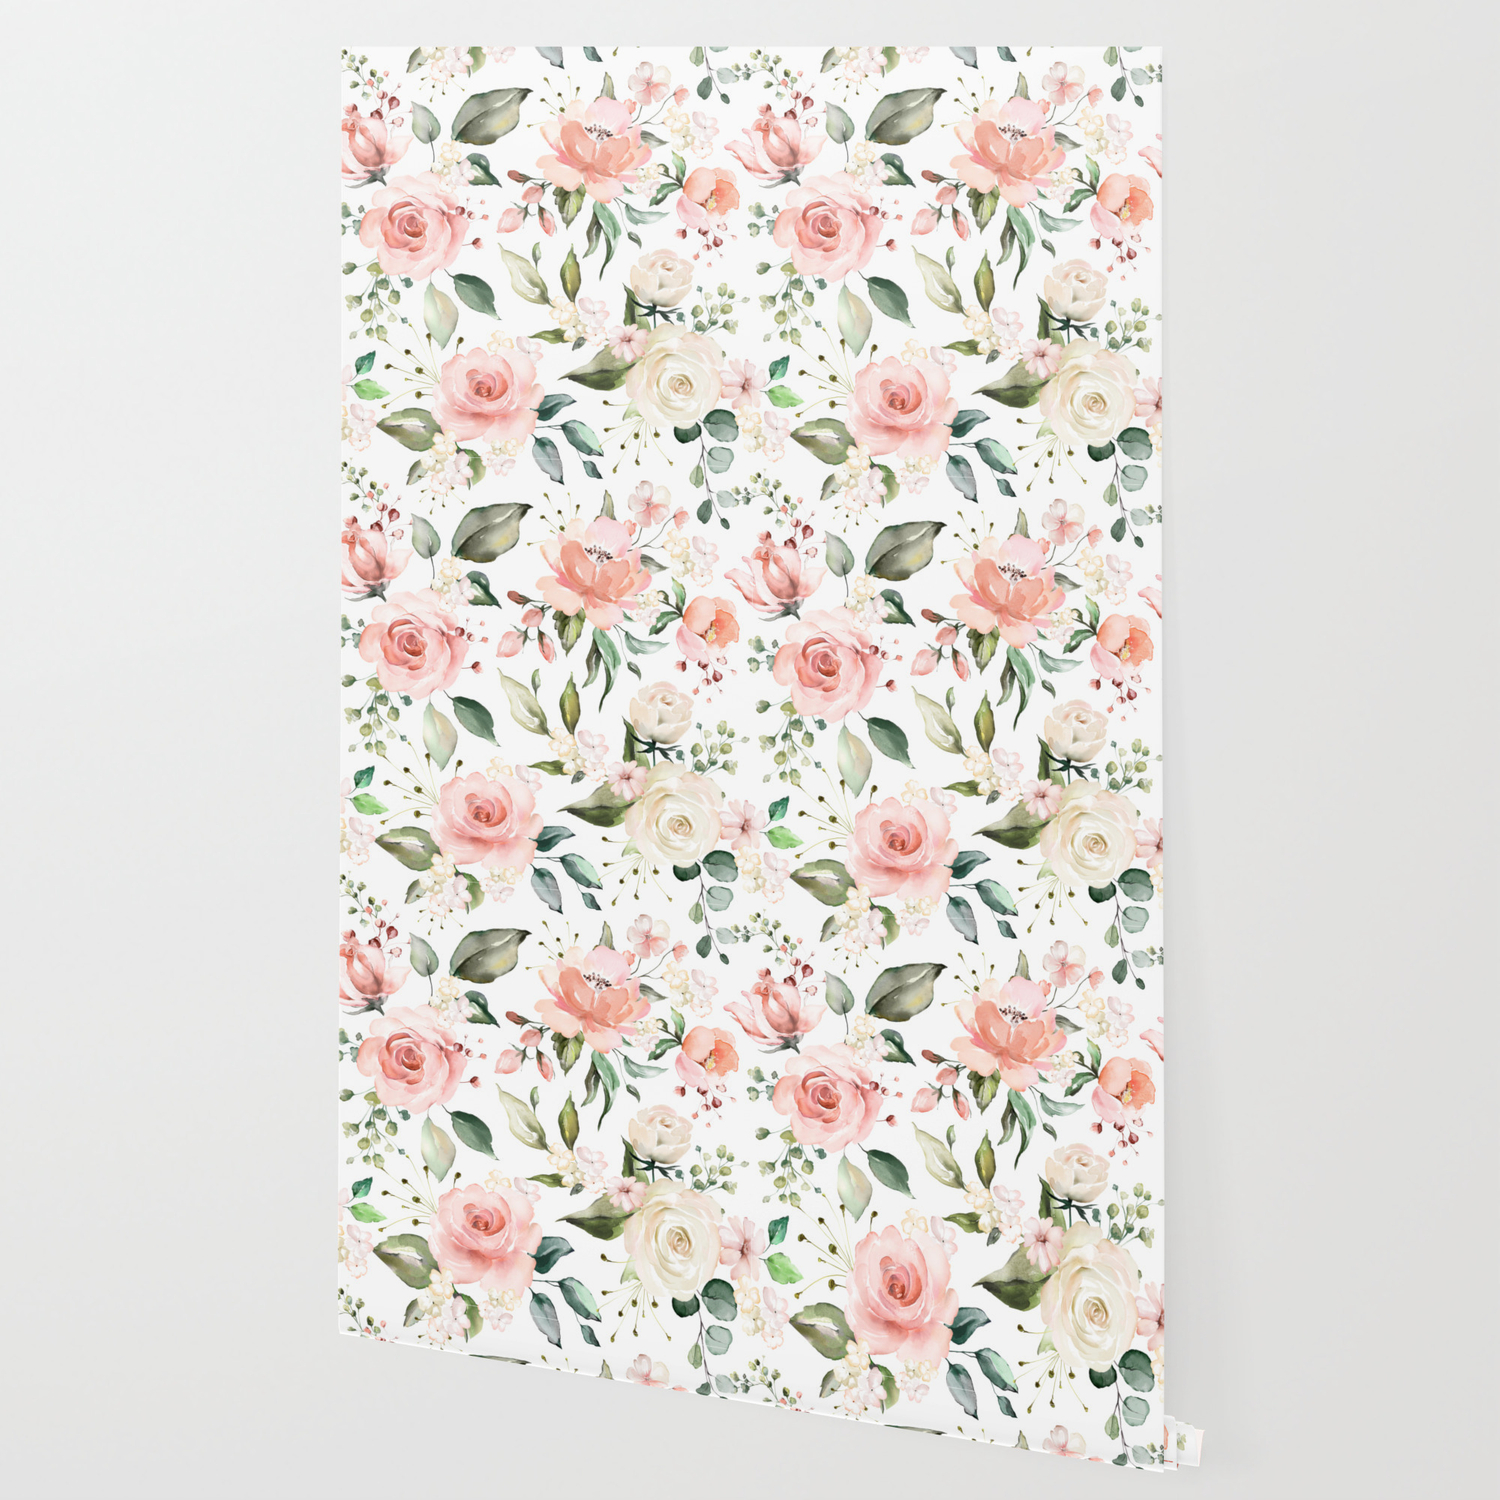 Sunny Floral Pastel Pink Watercolor Flower Pattern Wallpaper By